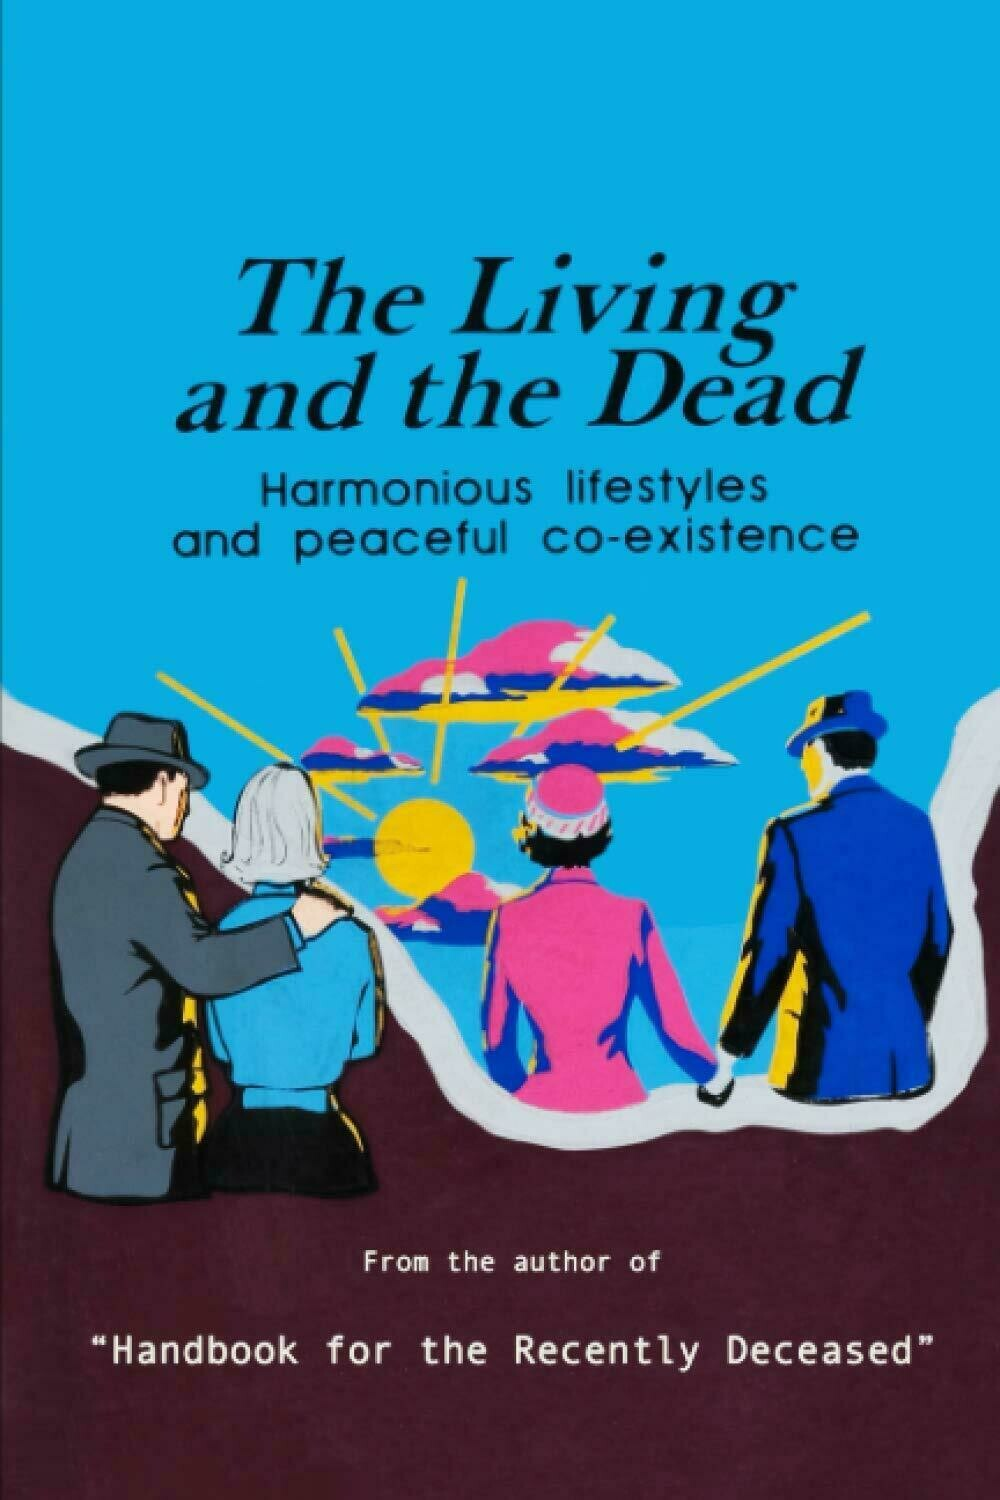 The Living and the Dead [From the author of Handbook for the Recently Deceased] Hardback Book - Beetlejuice Movie Prop Replica